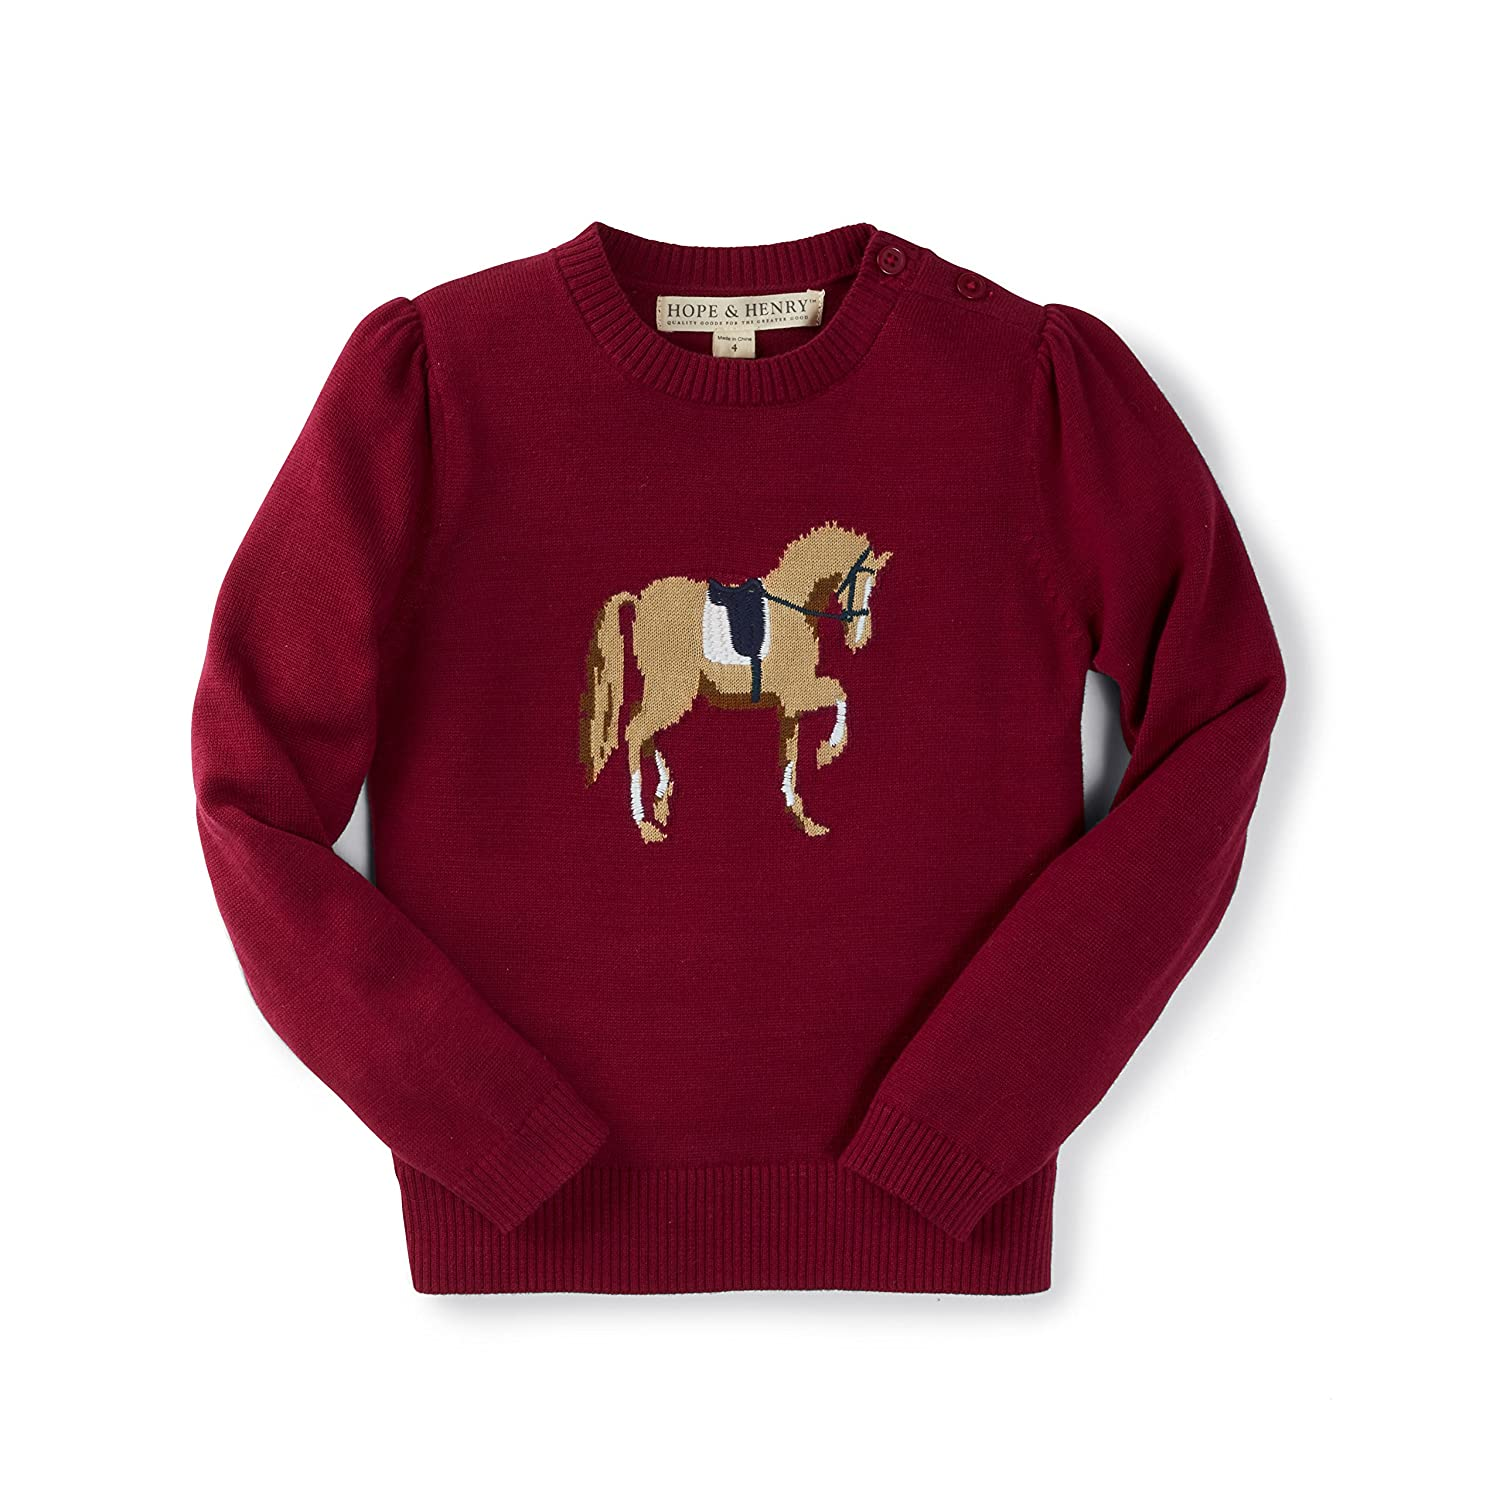 Hope & Henry Girls' Red Horse Intarsia Sweater Made with Organic Cotton